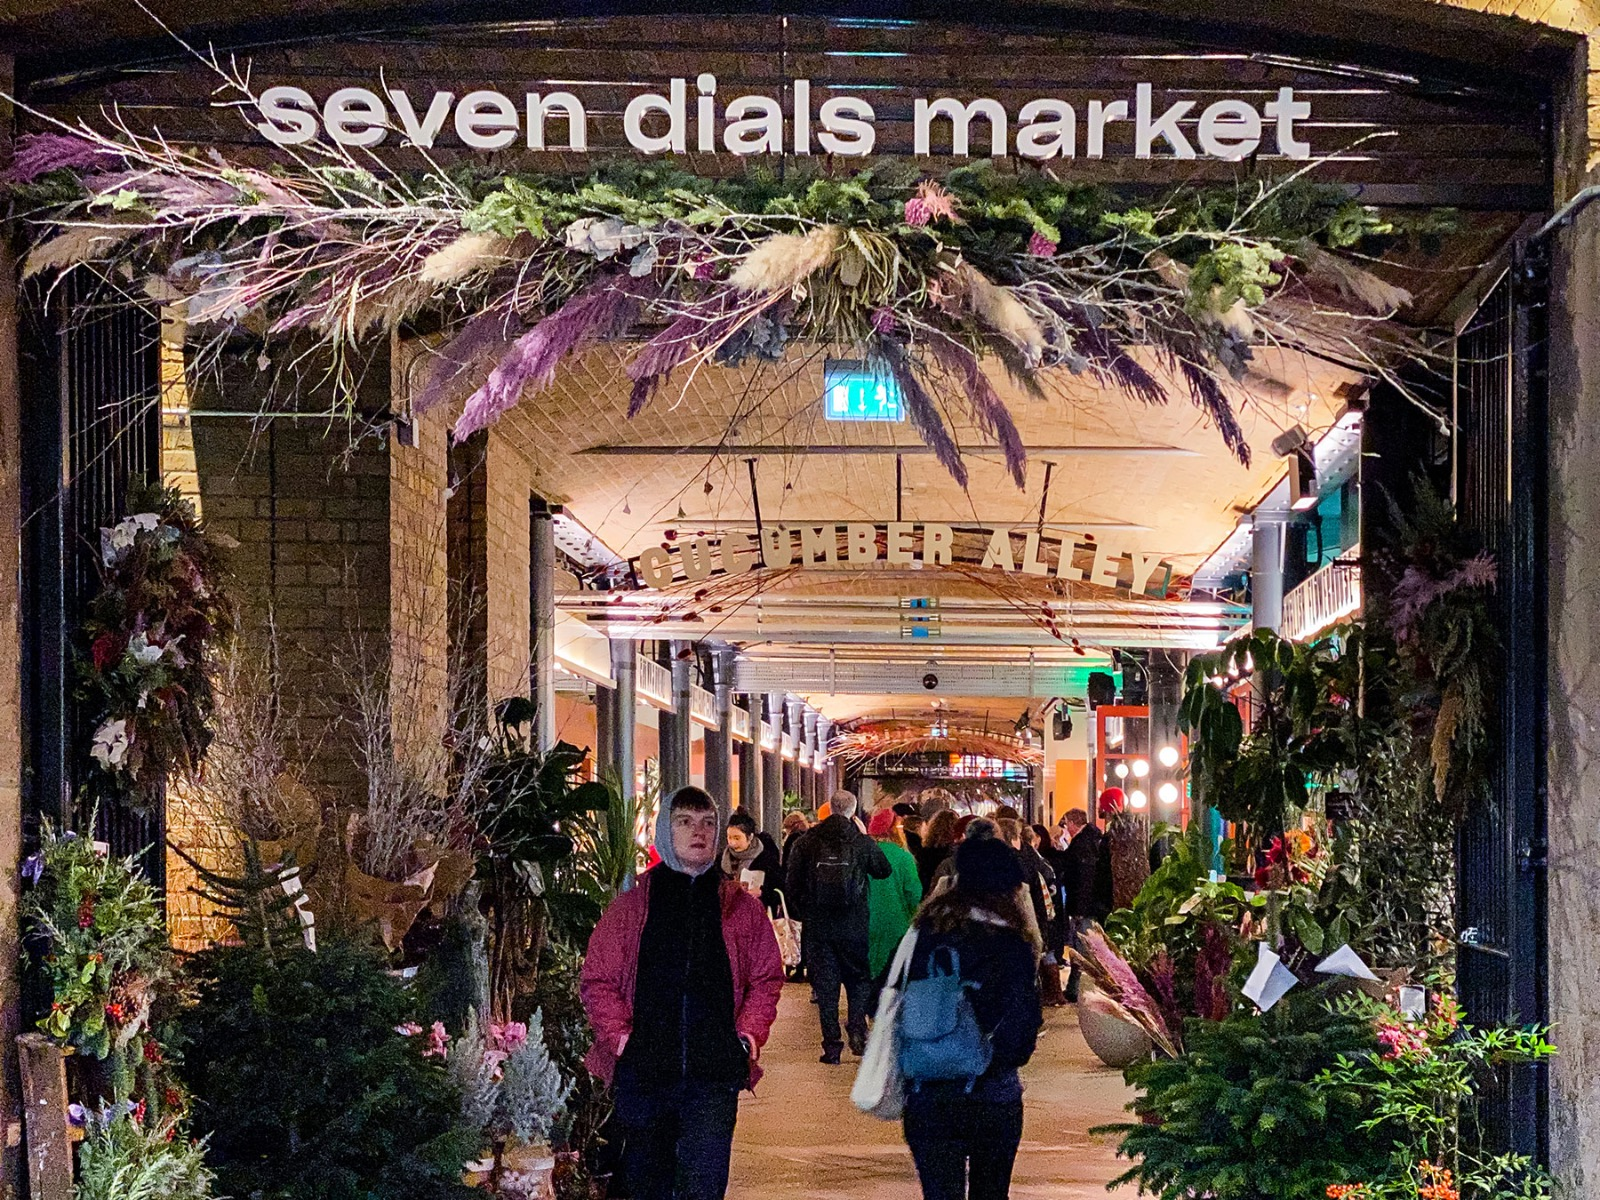 SEVEN DIALS MARKET by KERB | LONDON